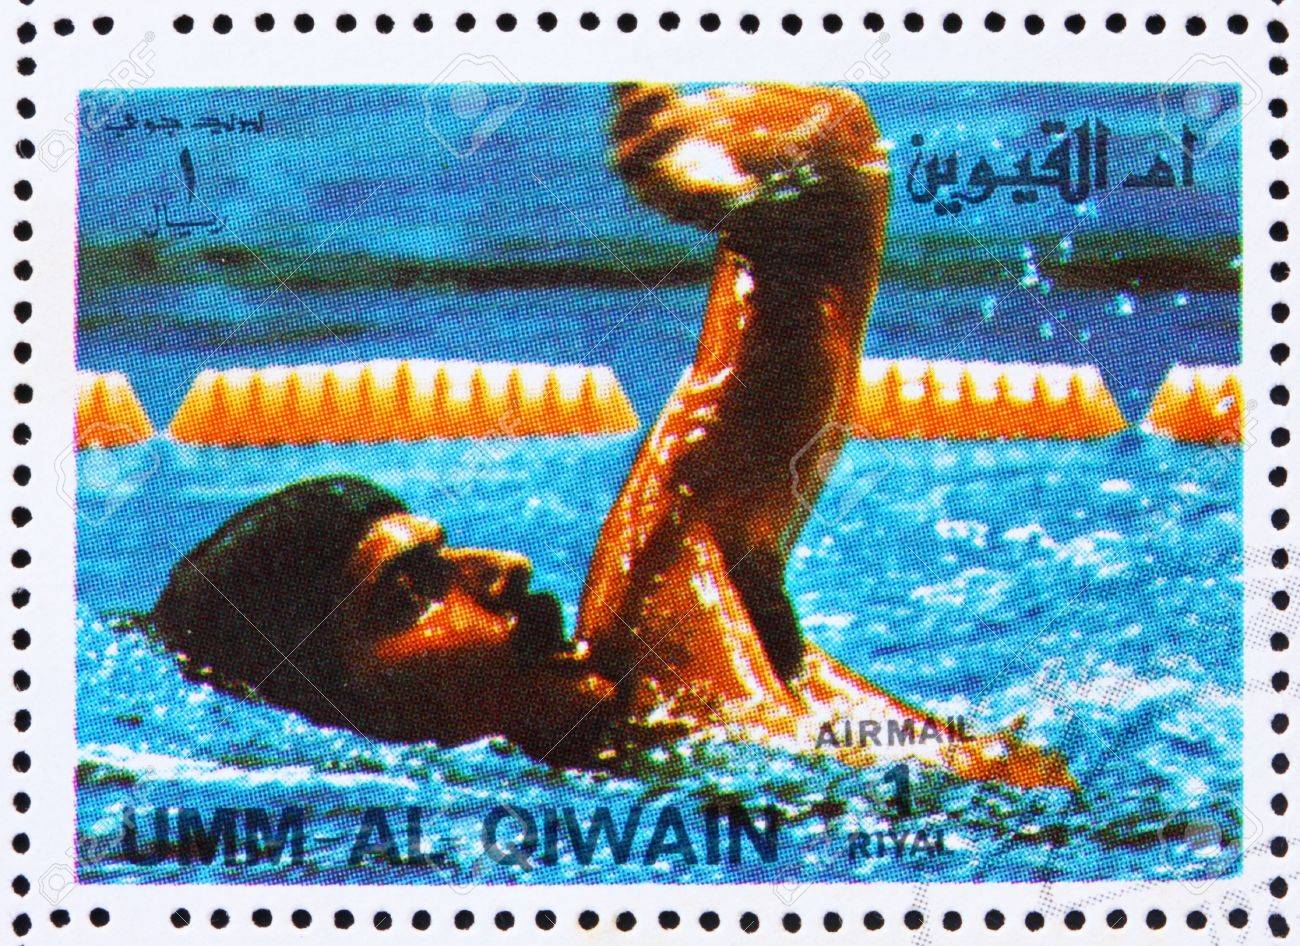 UMM AL-QUWAIN - CIRCA 1972: a stamp printed in the Umm al-Quwain shows Mark Spitz, USA, Winner of the Summer Olympics Munich 1972, circa 1972 Stock Photo - 14146353